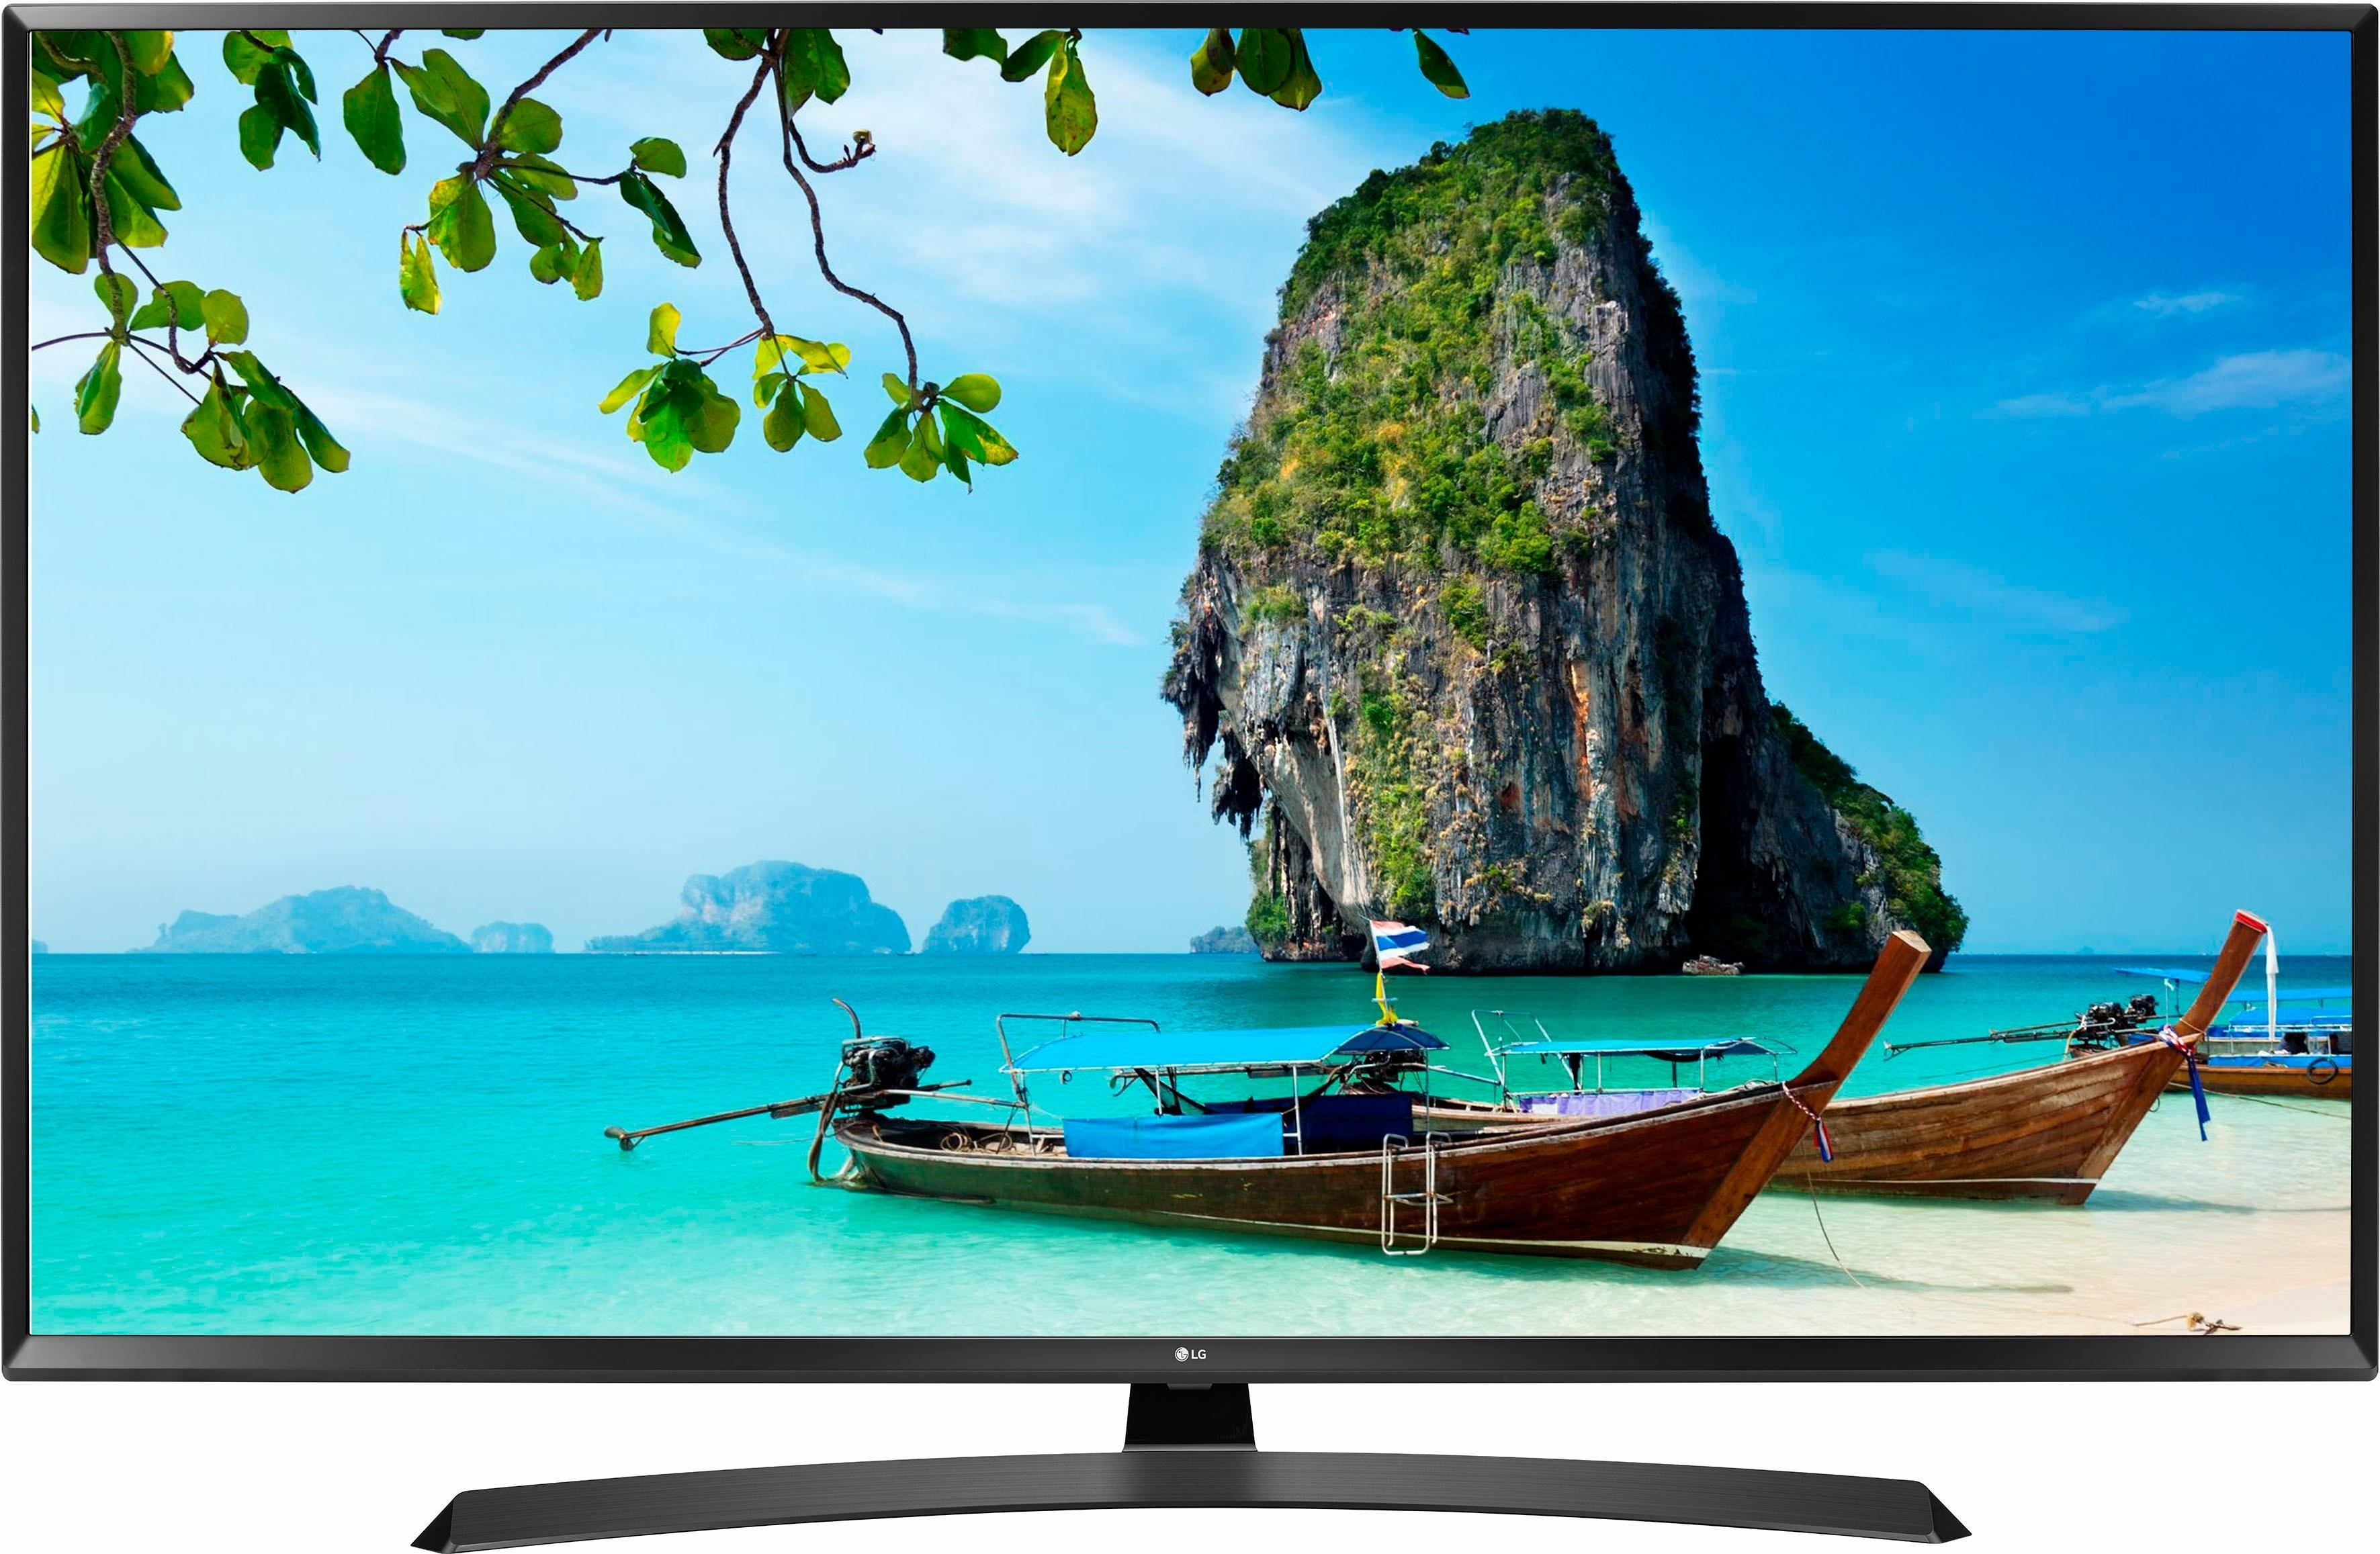 lg 55uj635v led tv 139 cm 55 inch 4k ultra hd smart tv makkelijk besteld otto. Black Bedroom Furniture Sets. Home Design Ideas